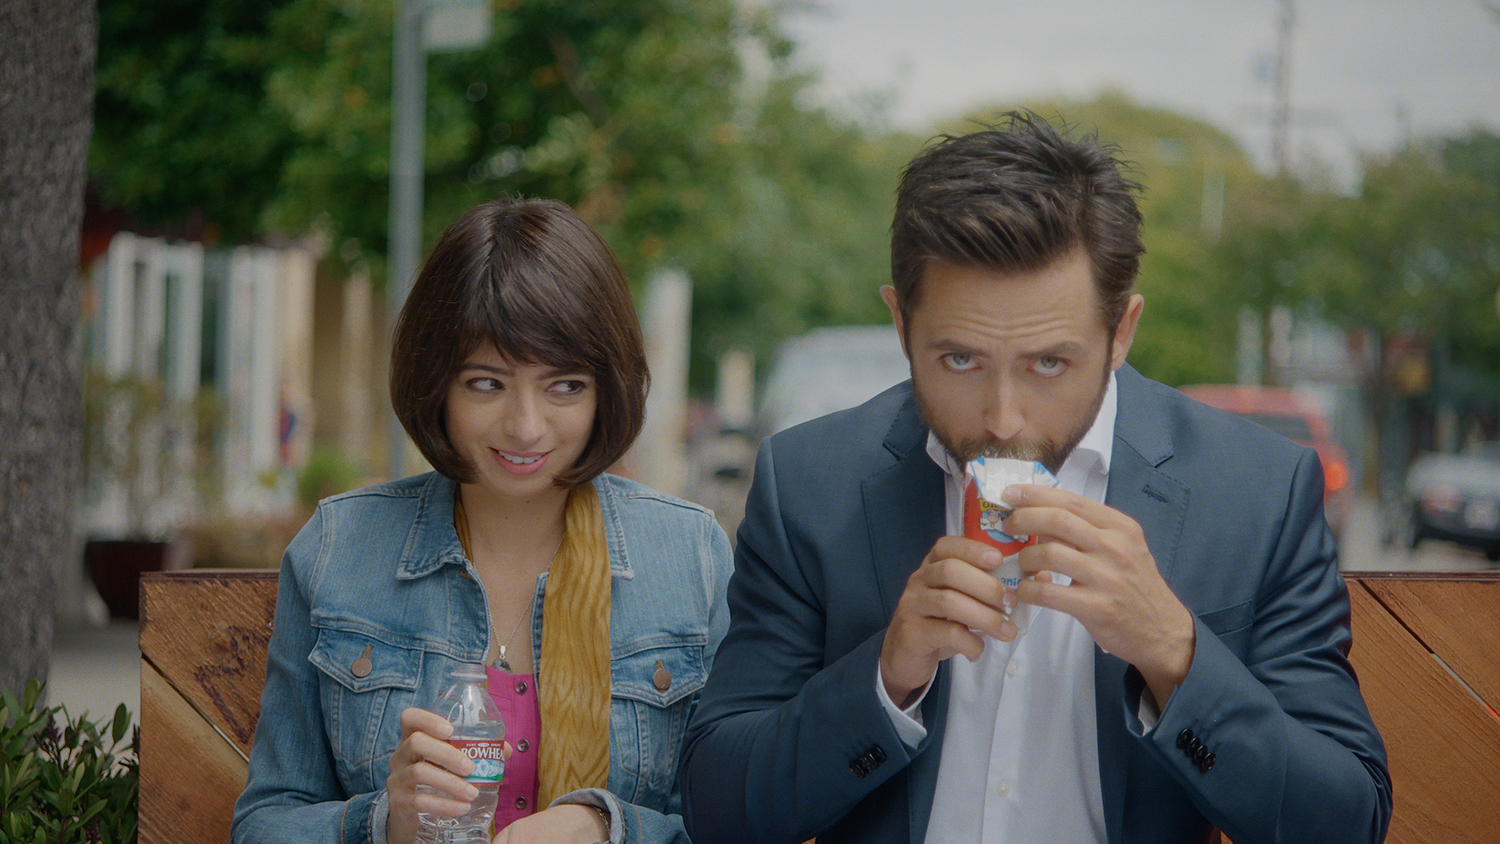 GIVEAWAY: Unleashed, starring Kate Micucci